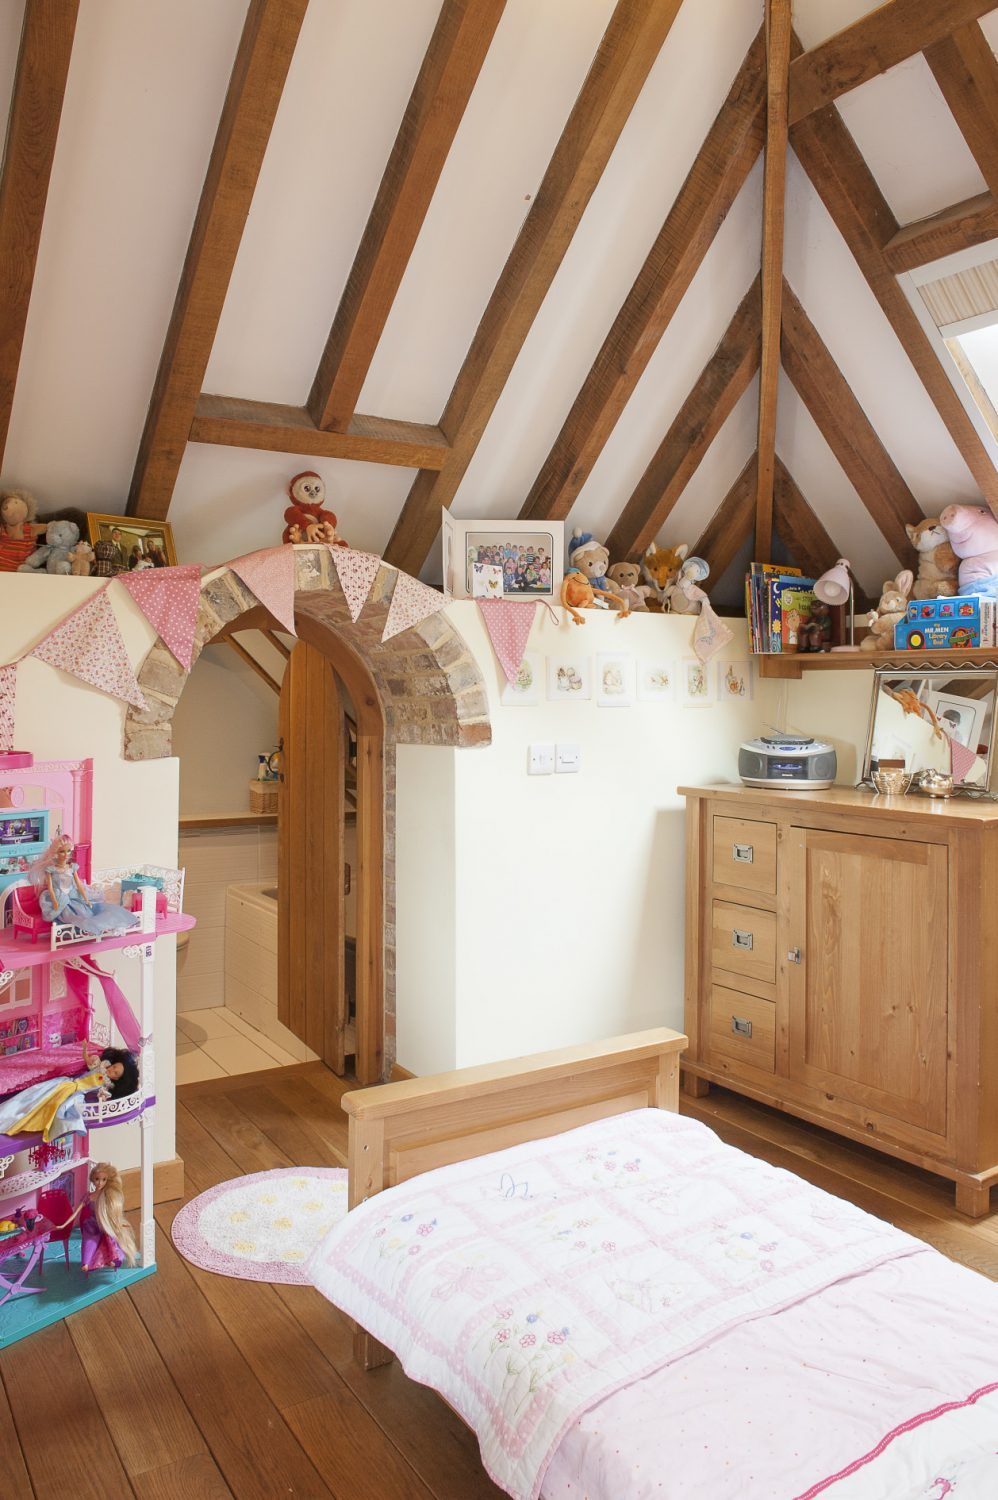 Katie has her own bathroom, accessed through a tiny child-sized doorway in her room. The floors are oak with – as elsewhere – underfloor heating powered by an air-source heat pump